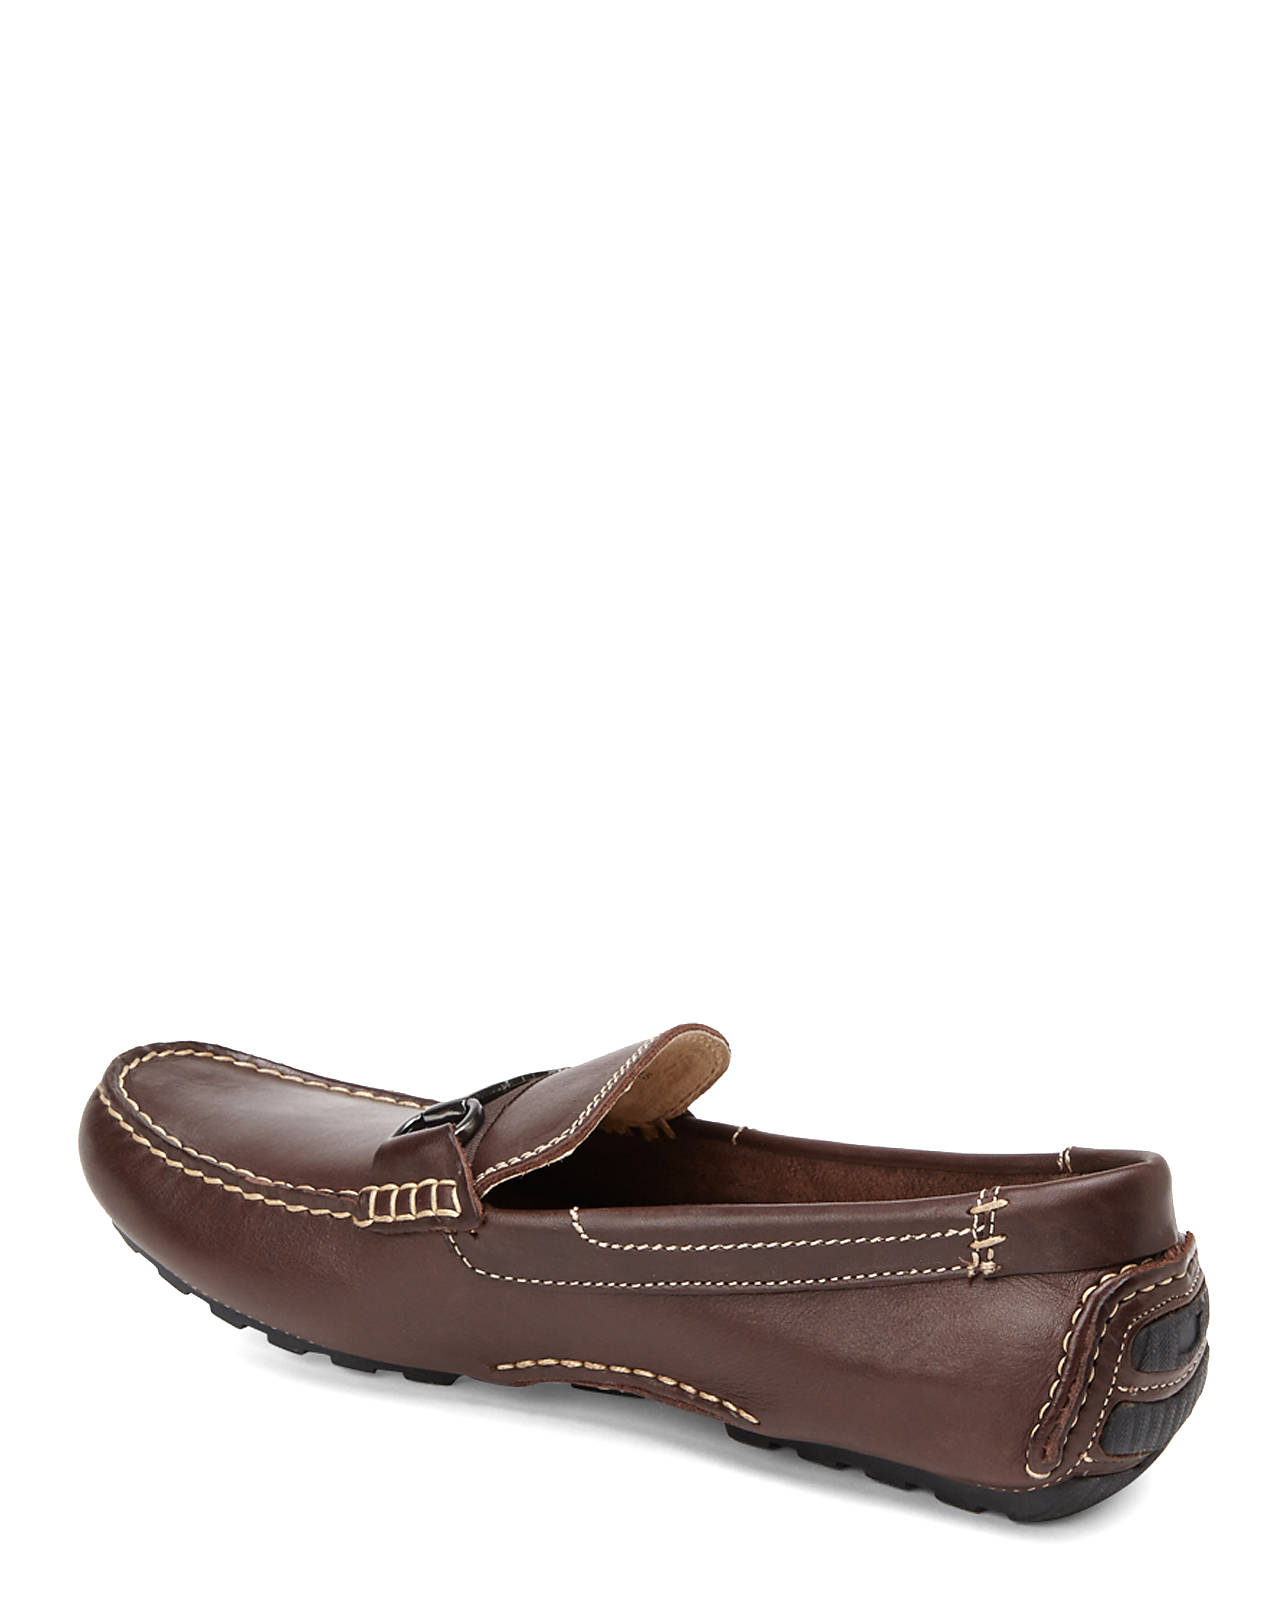 1af99e11a3a Lyst - Florsheim Brown Roadster Bit Loafers in Brown for Men